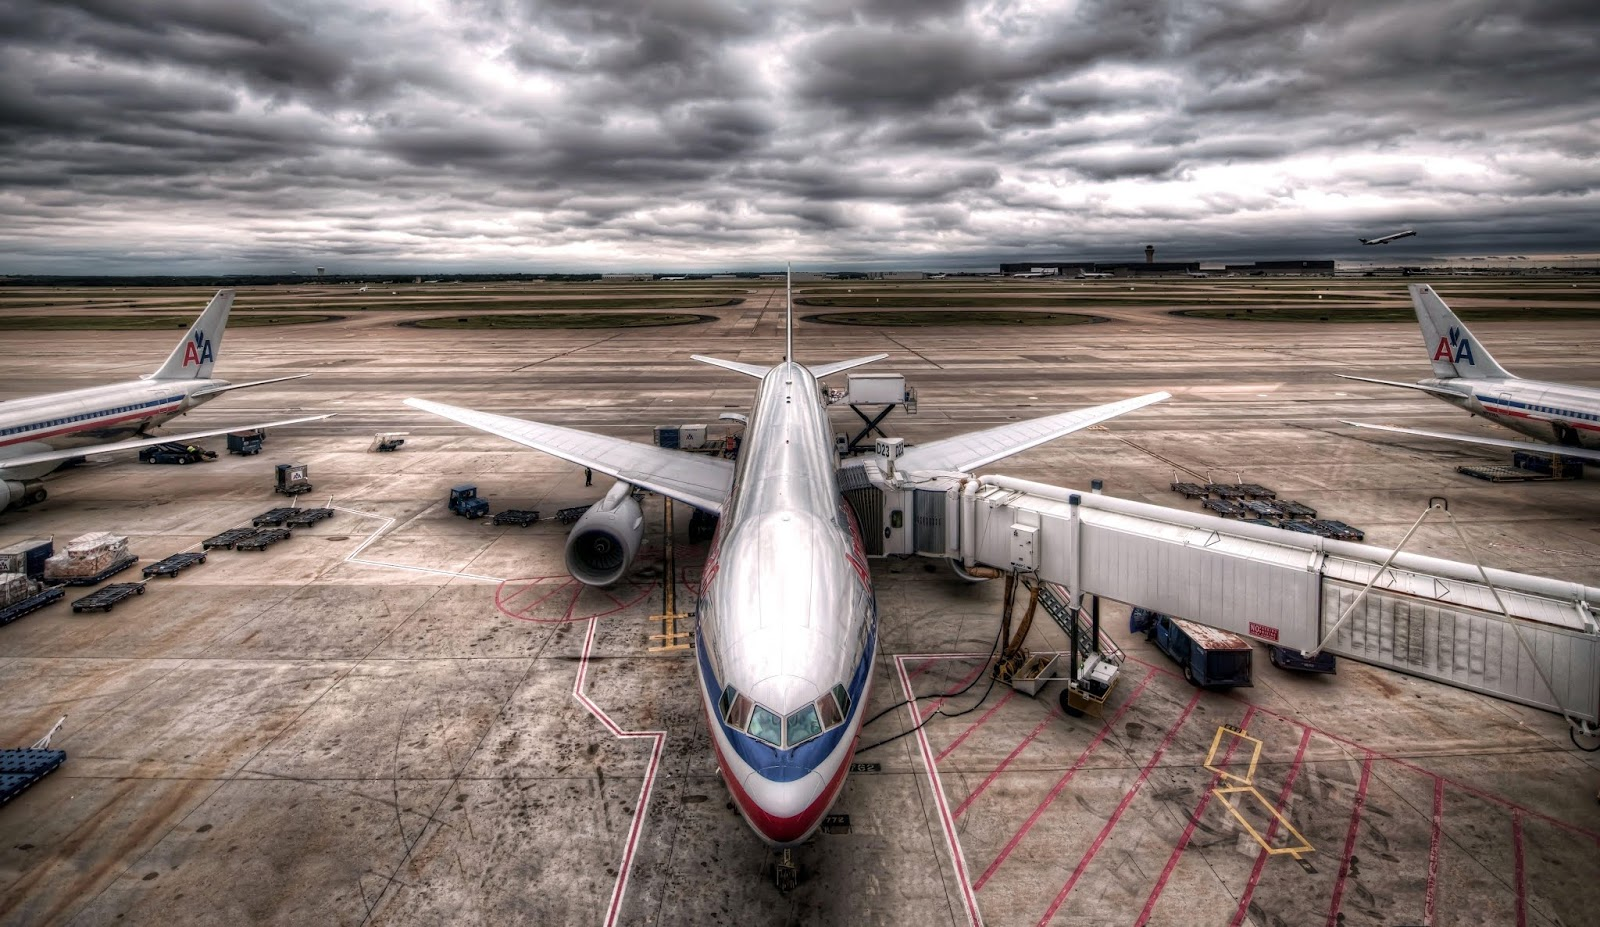 photo Aviation Airplane Passenger Airplanes Boeing 777 HDR Clouds wallpapers